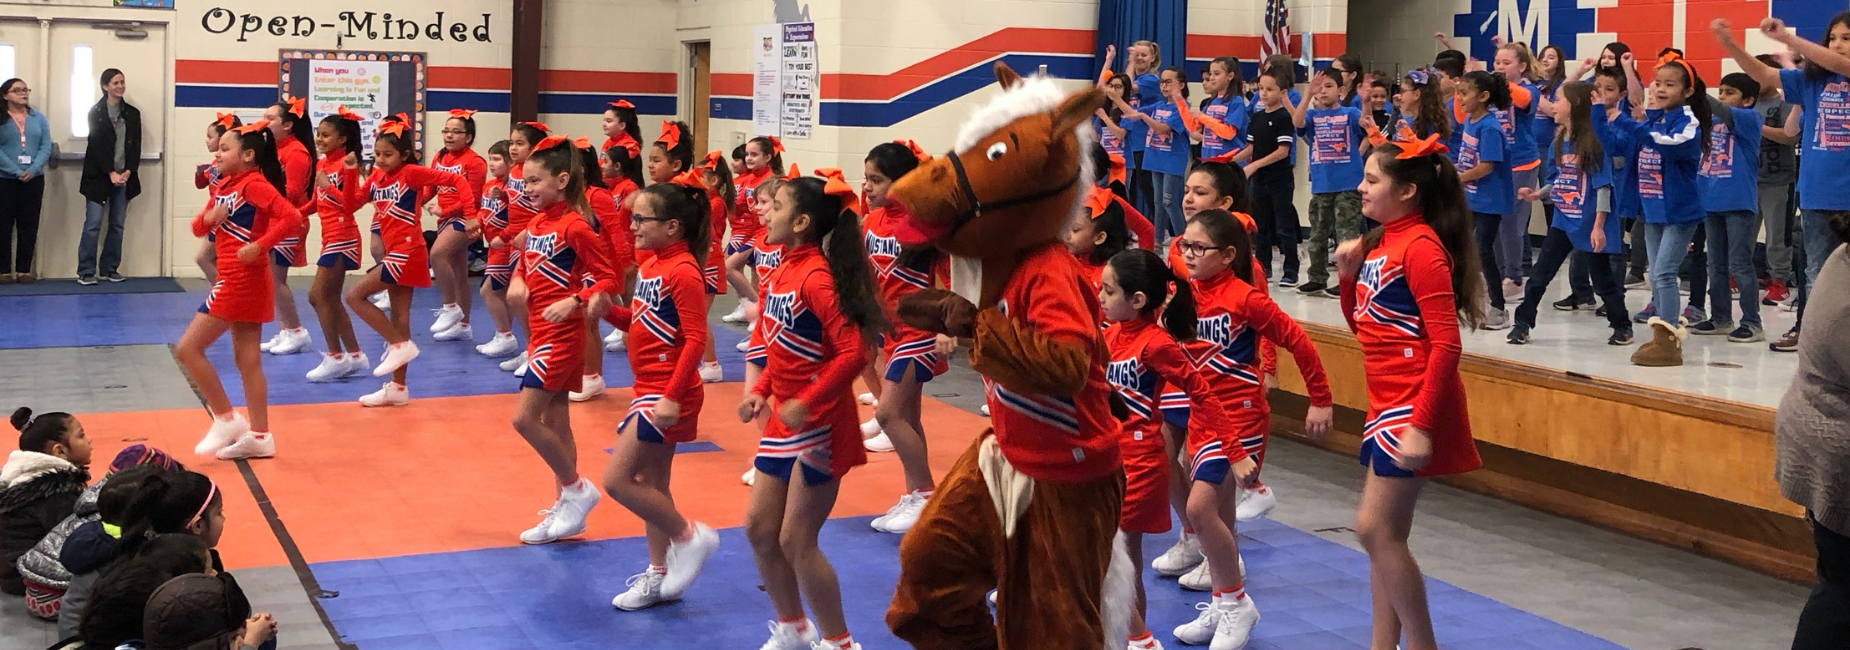 School Board Appreciation Month Assembly with Cheerleaders and Music Performance